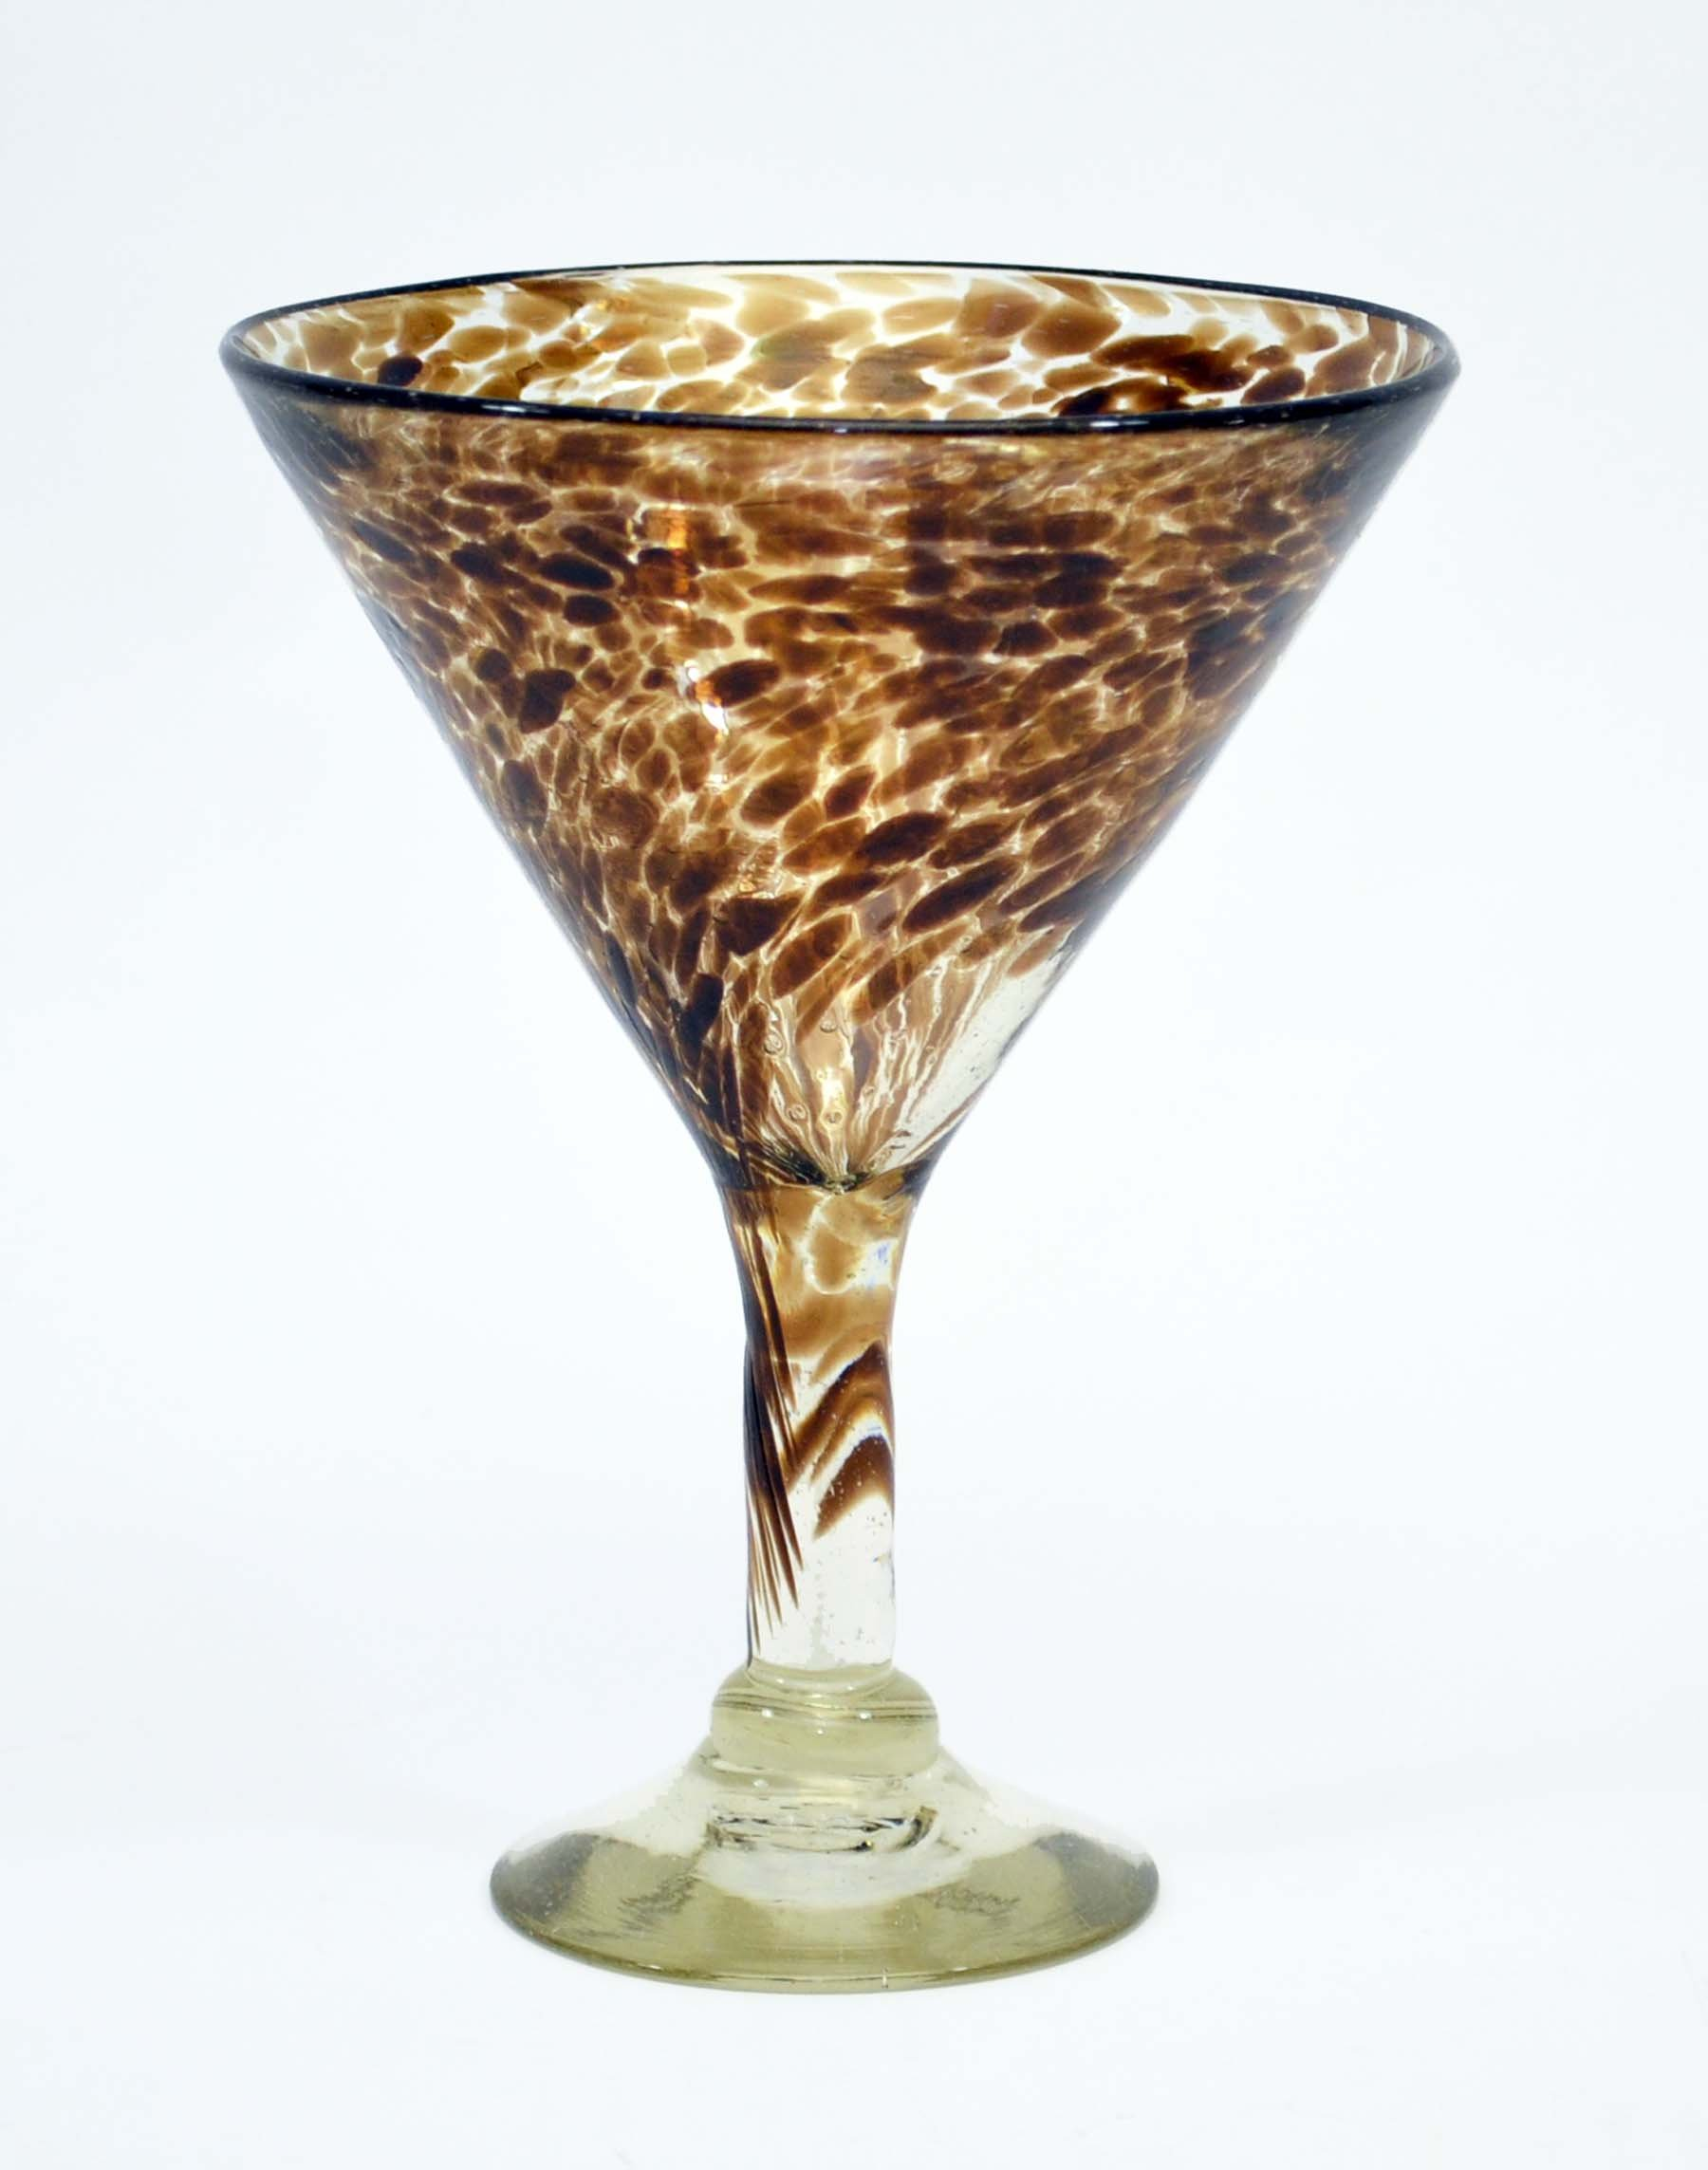 Set of 4, Handmade Mexican Chocolate Confetti Martini Shaped Margarita Glasses, Recycled Glass-14 ounces each.